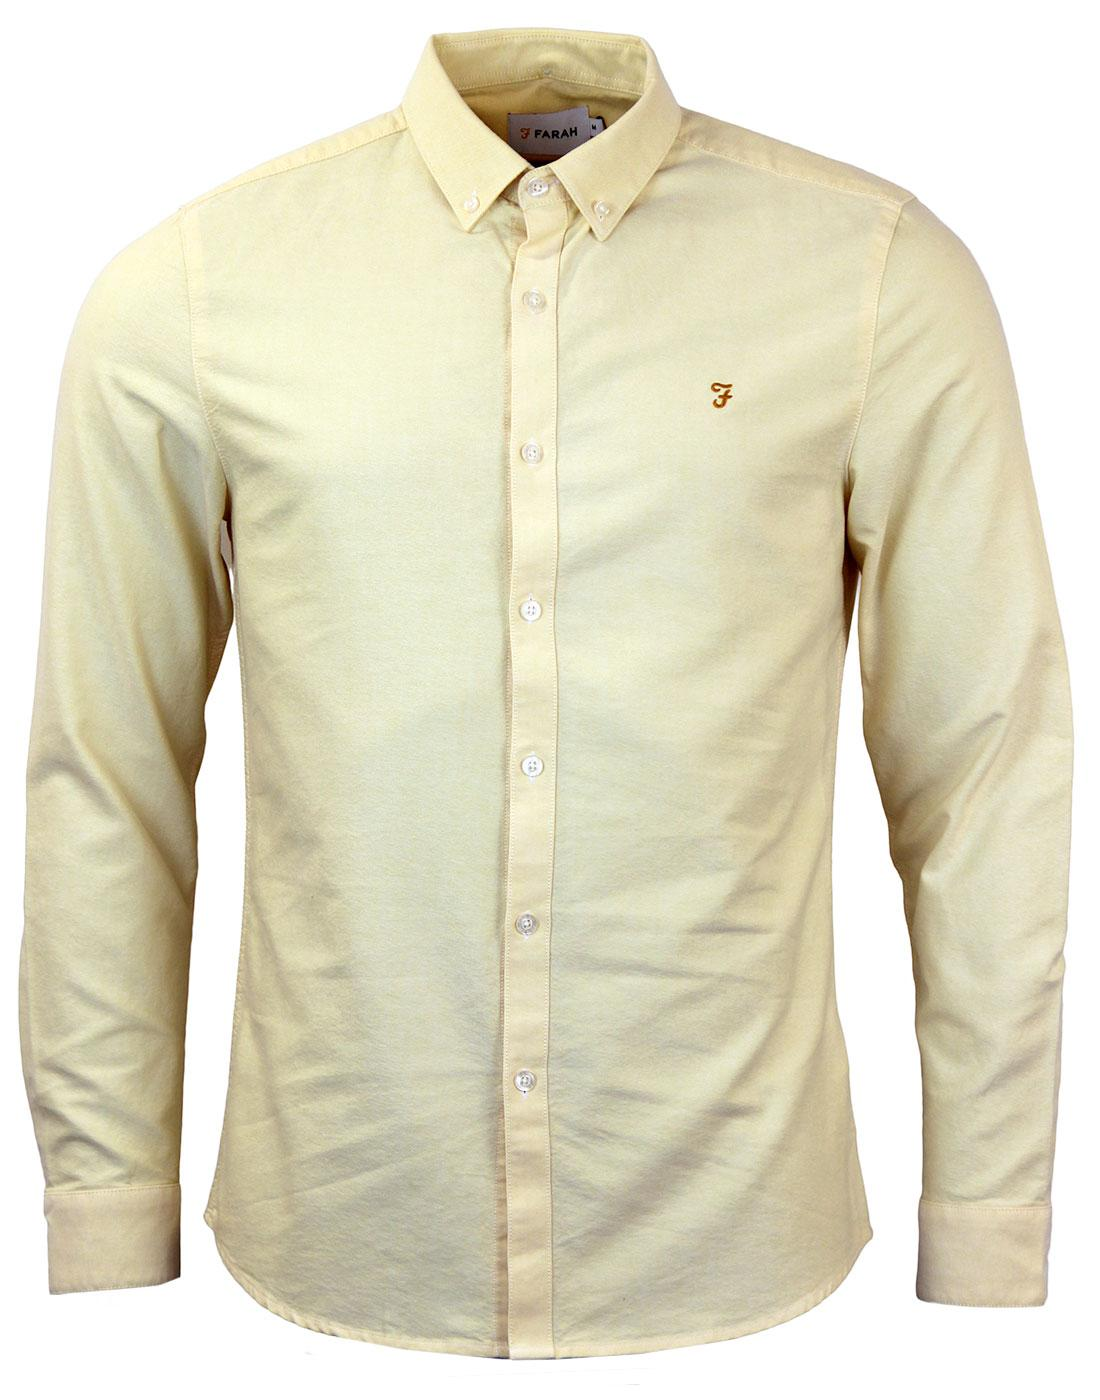 Brewer FARAH Retro Sixties Mod Oxford Shirt S